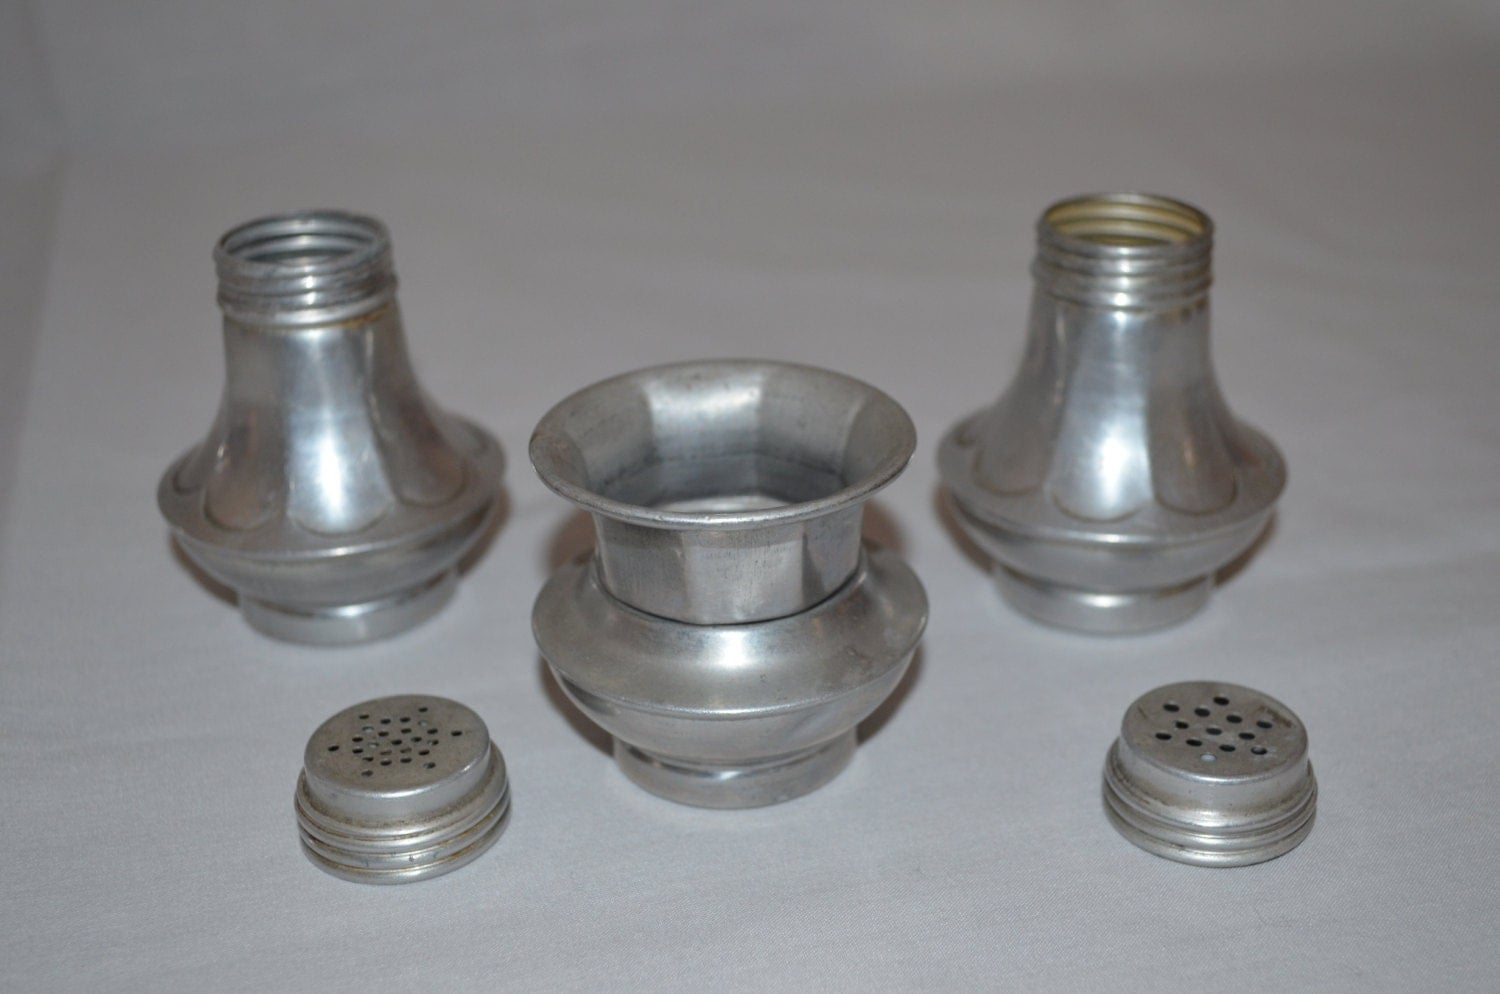 Scalloped Aluminum Salt And Pepper Shaker With Toothpick